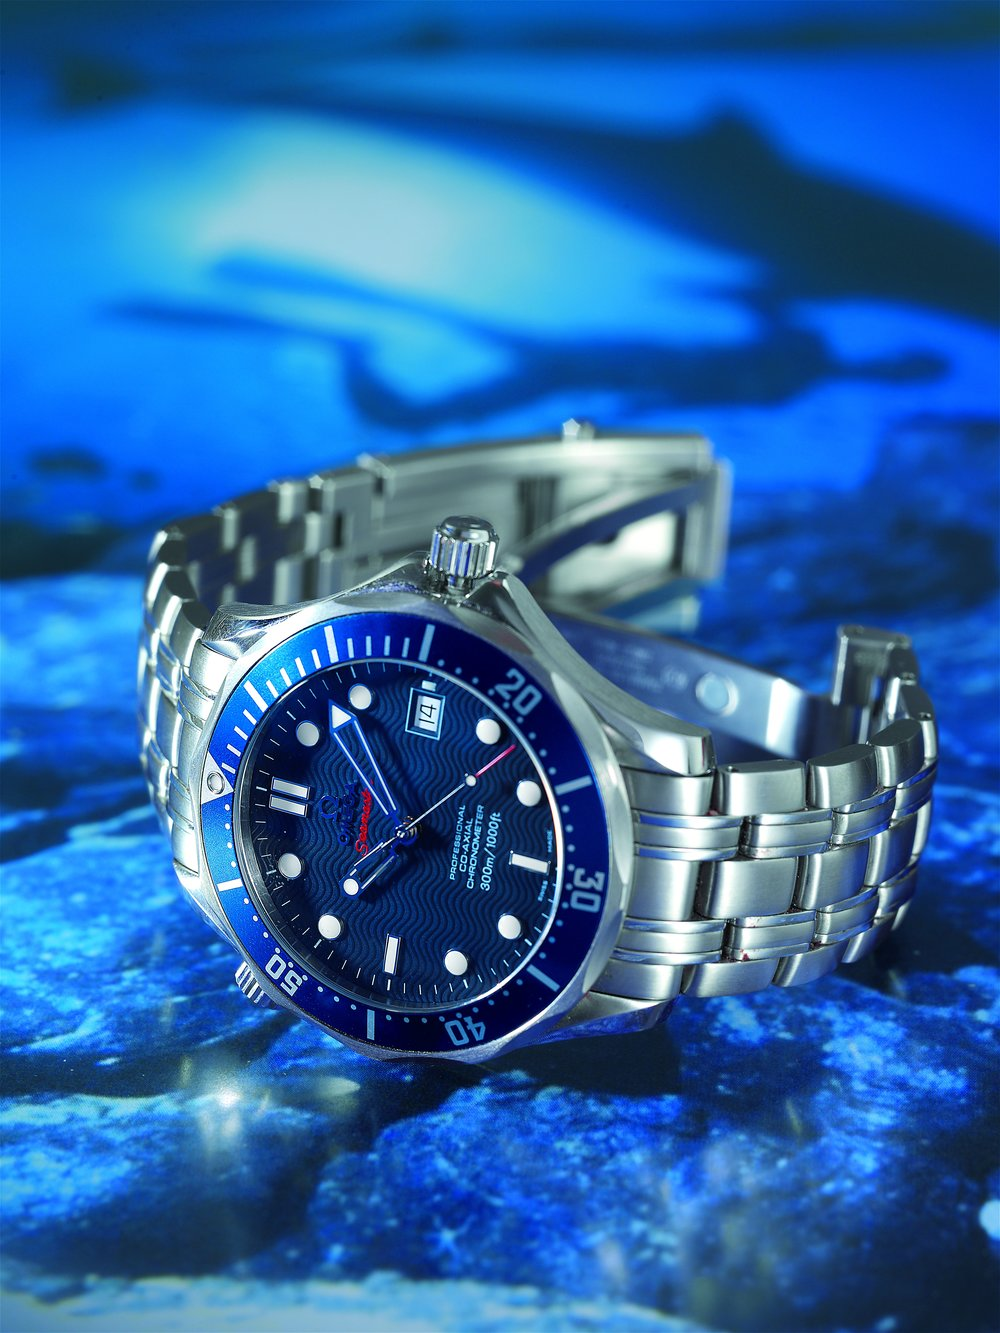 The Omega Seamaster 300 worn by Daniel Craig during Casino Royale. Photo courtesy of Antiquorum.